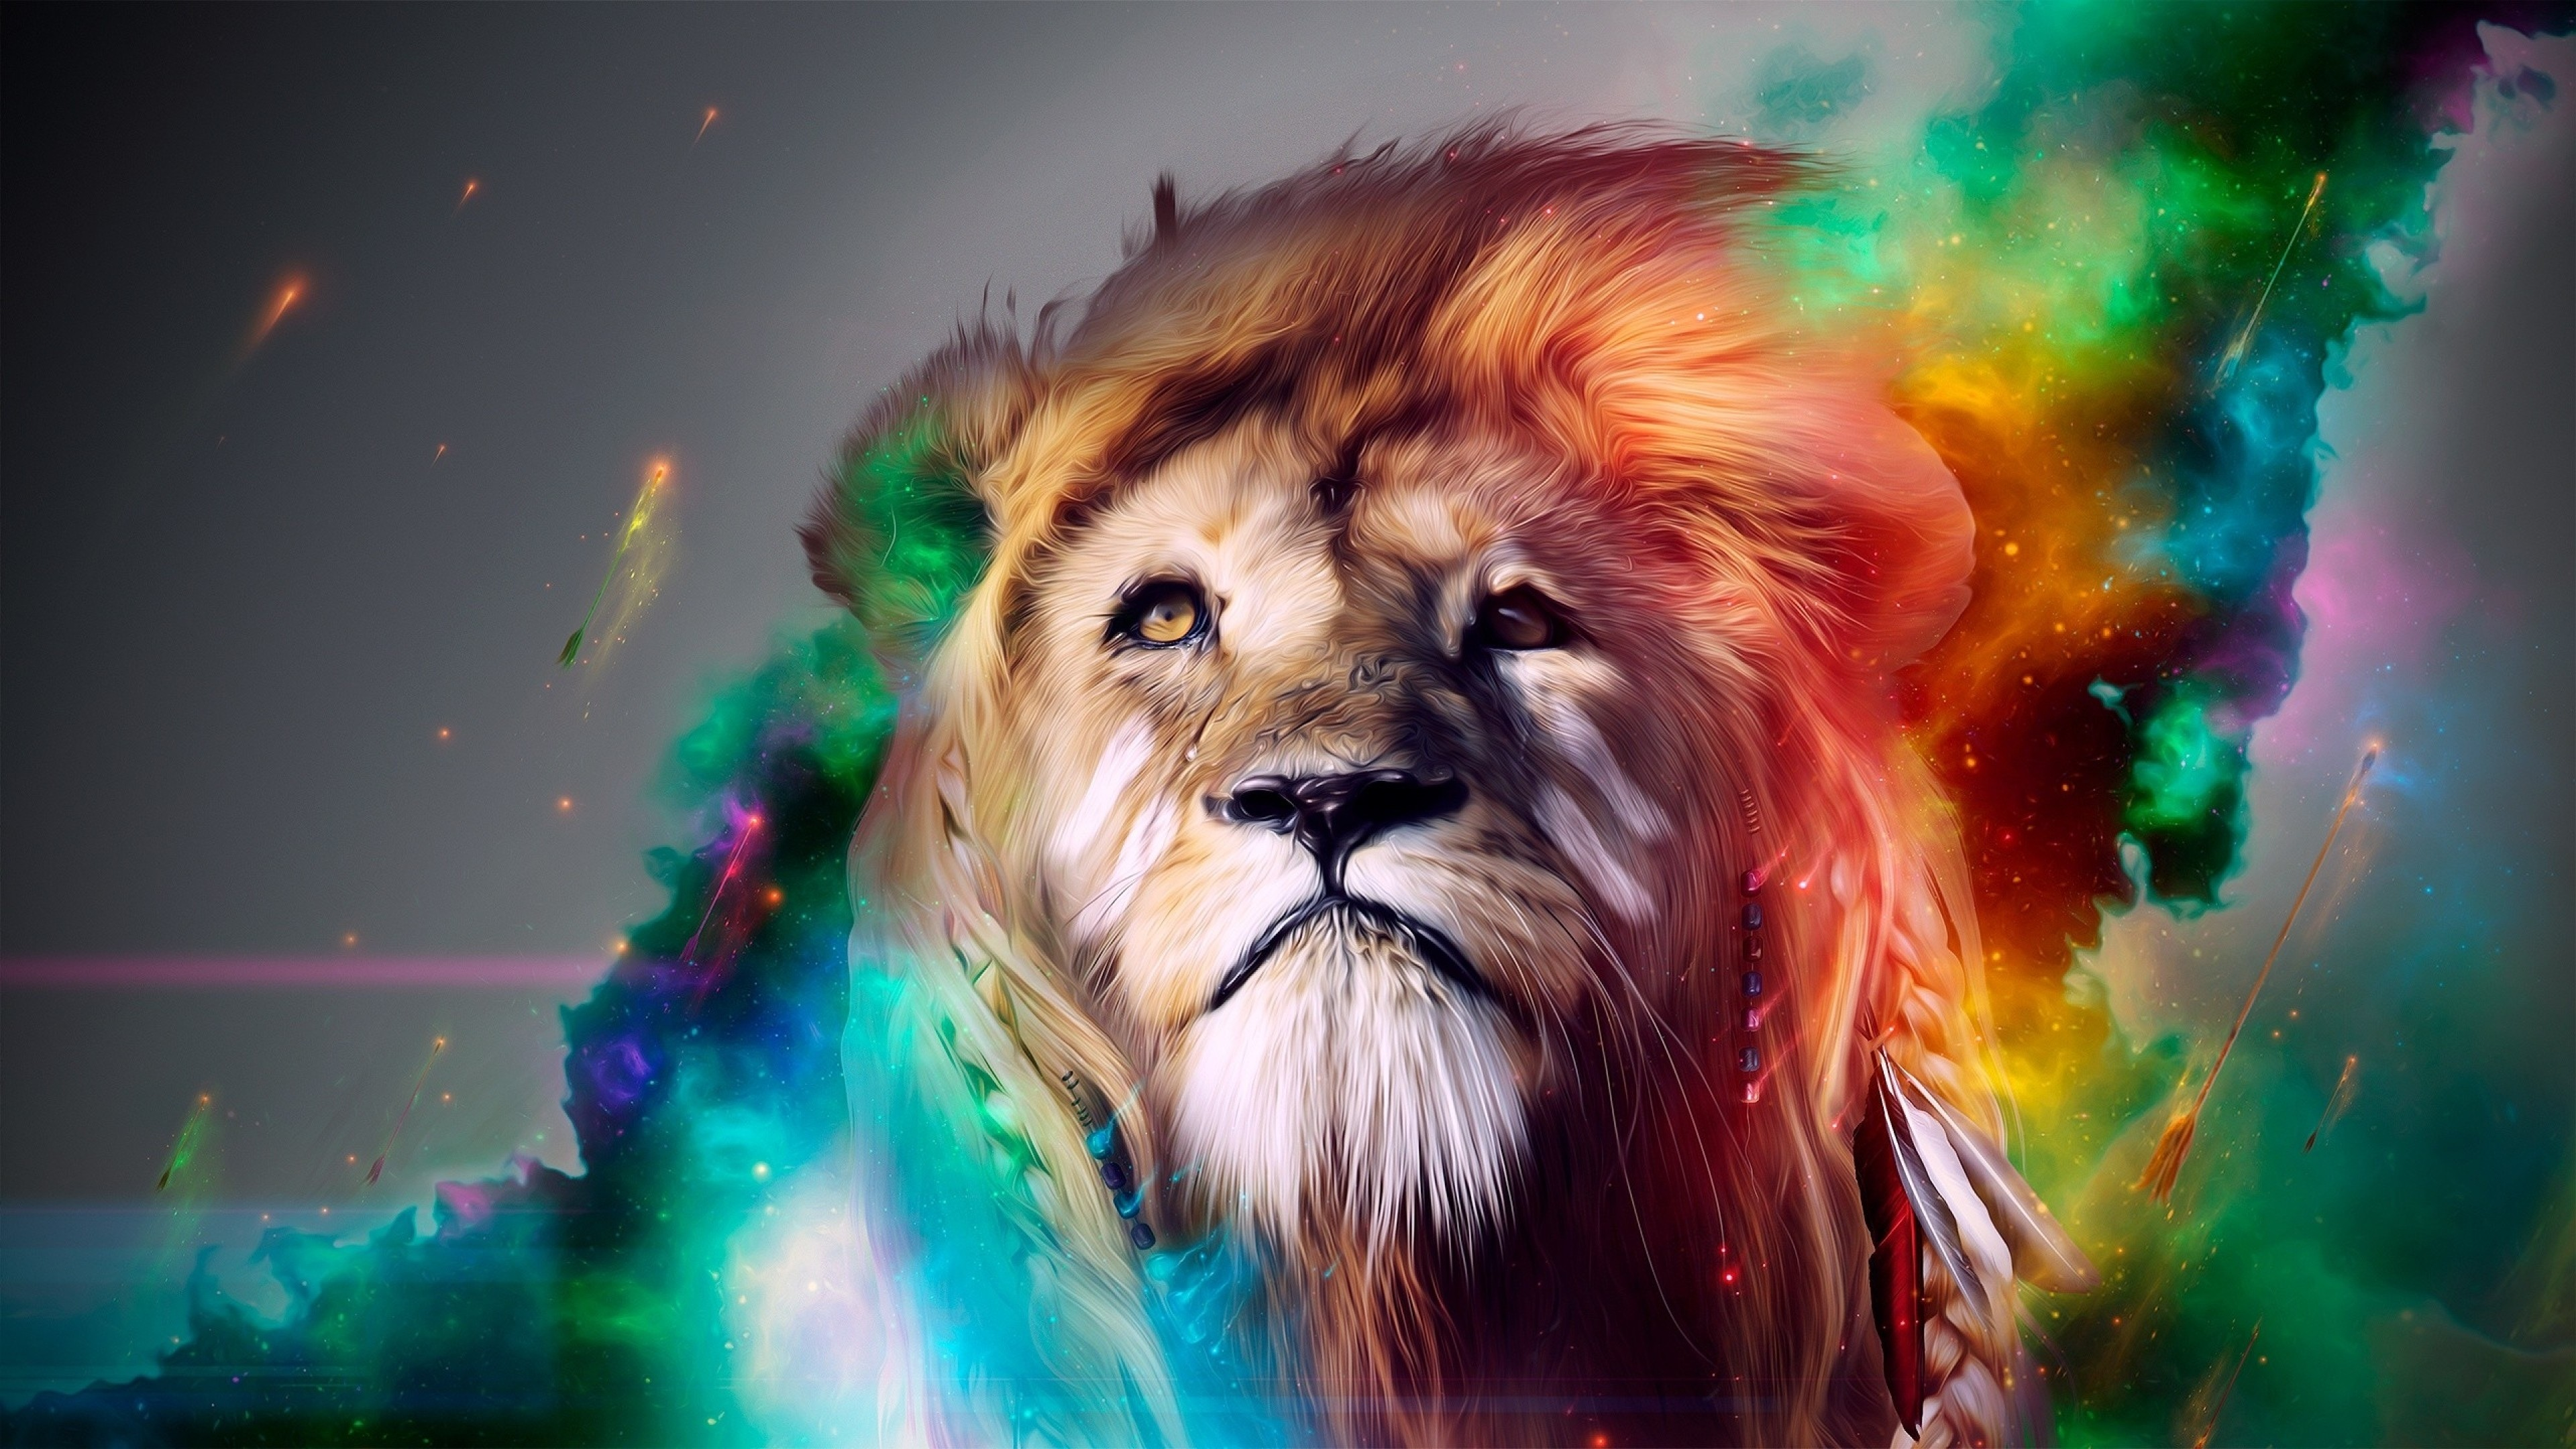 3840x2160 Preview wallpaper lion, big cat, face, smoke, colored